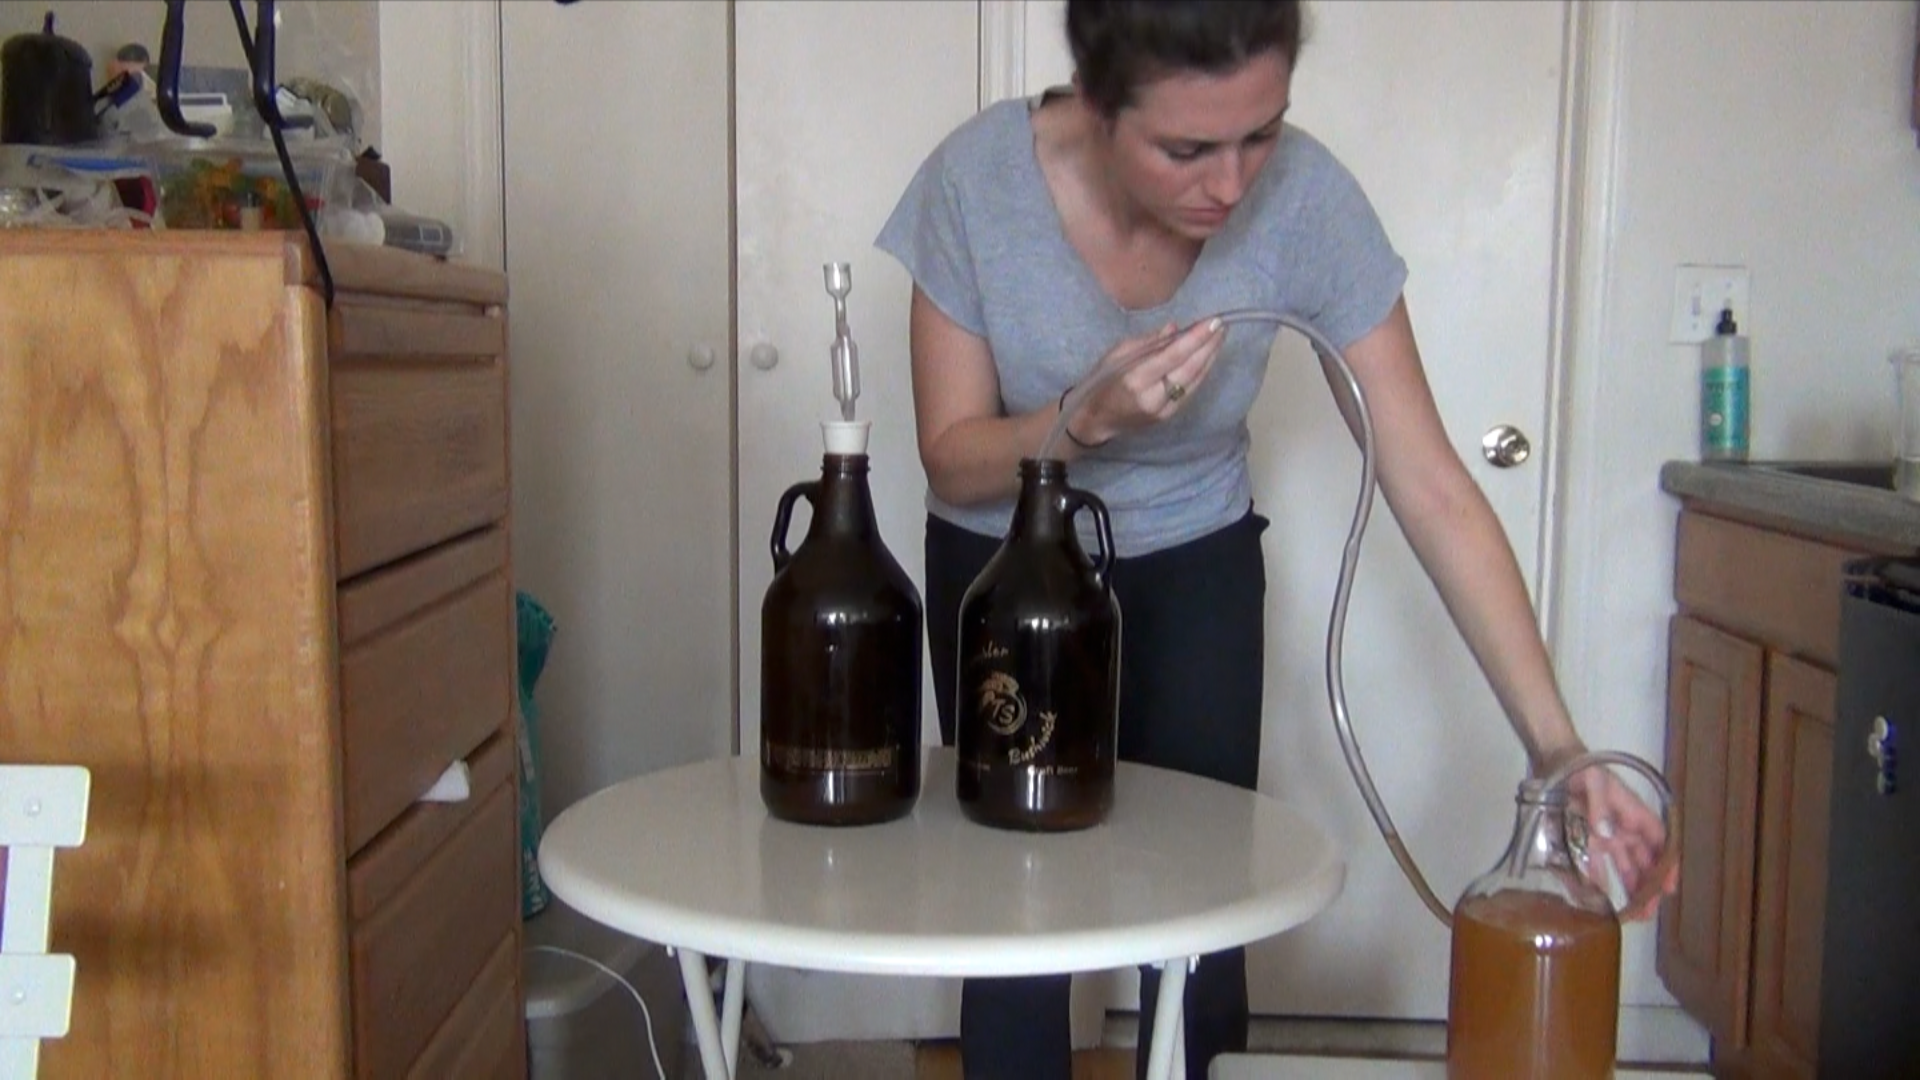 Siphoning: a delicate process that a skilled artisan is likely very good at. I am not that skilled artisan.